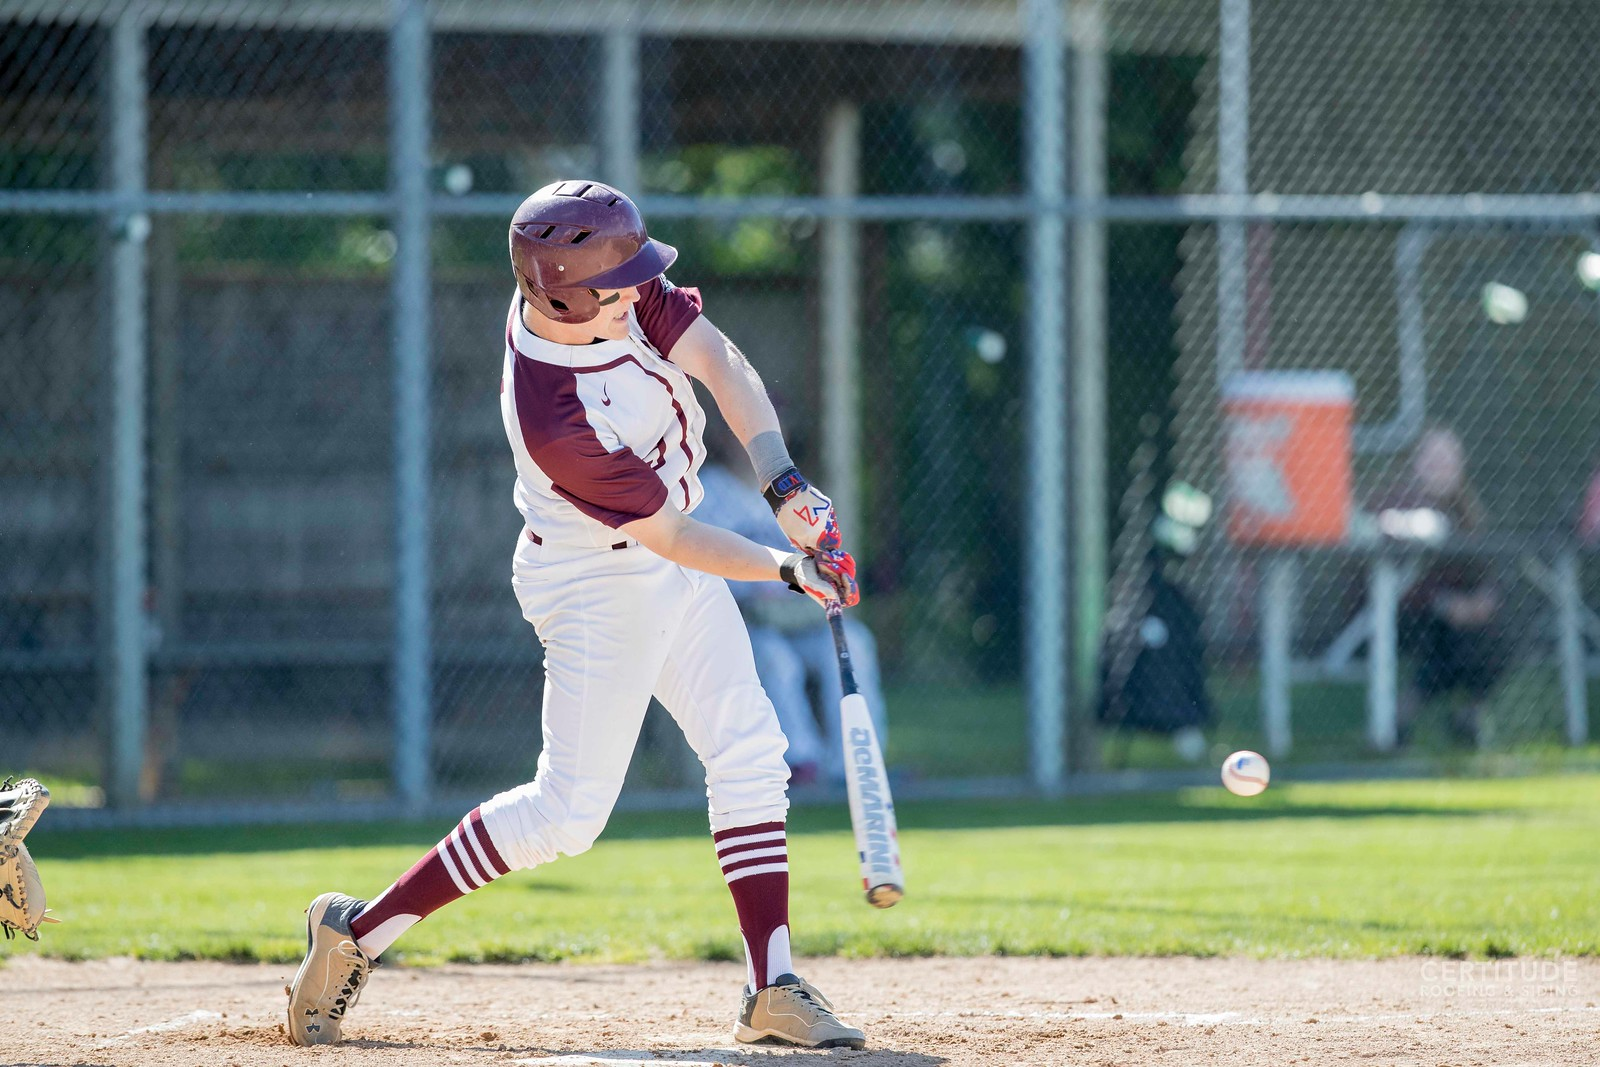 Lower_Merion_BASEBALL_vs_Conestoga-157